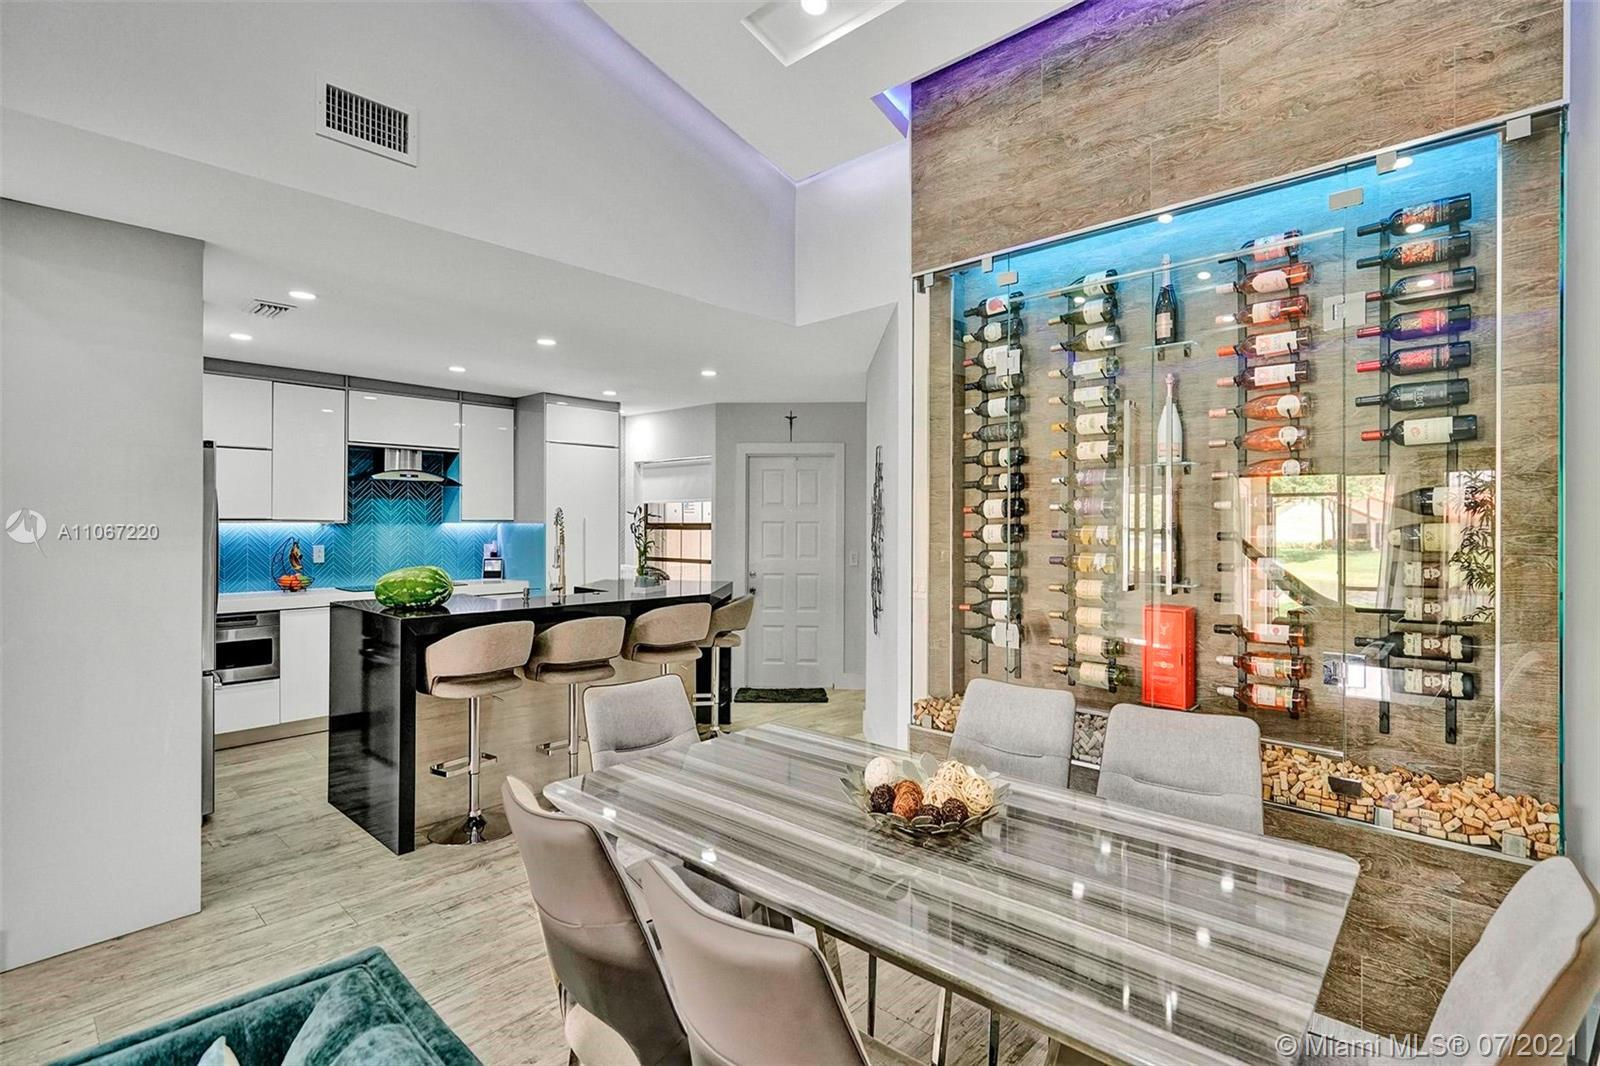 Stunning Villa in an awesome gated community! Impeccably remodeled!!  This beautiful 3 bedrooms, 2 b